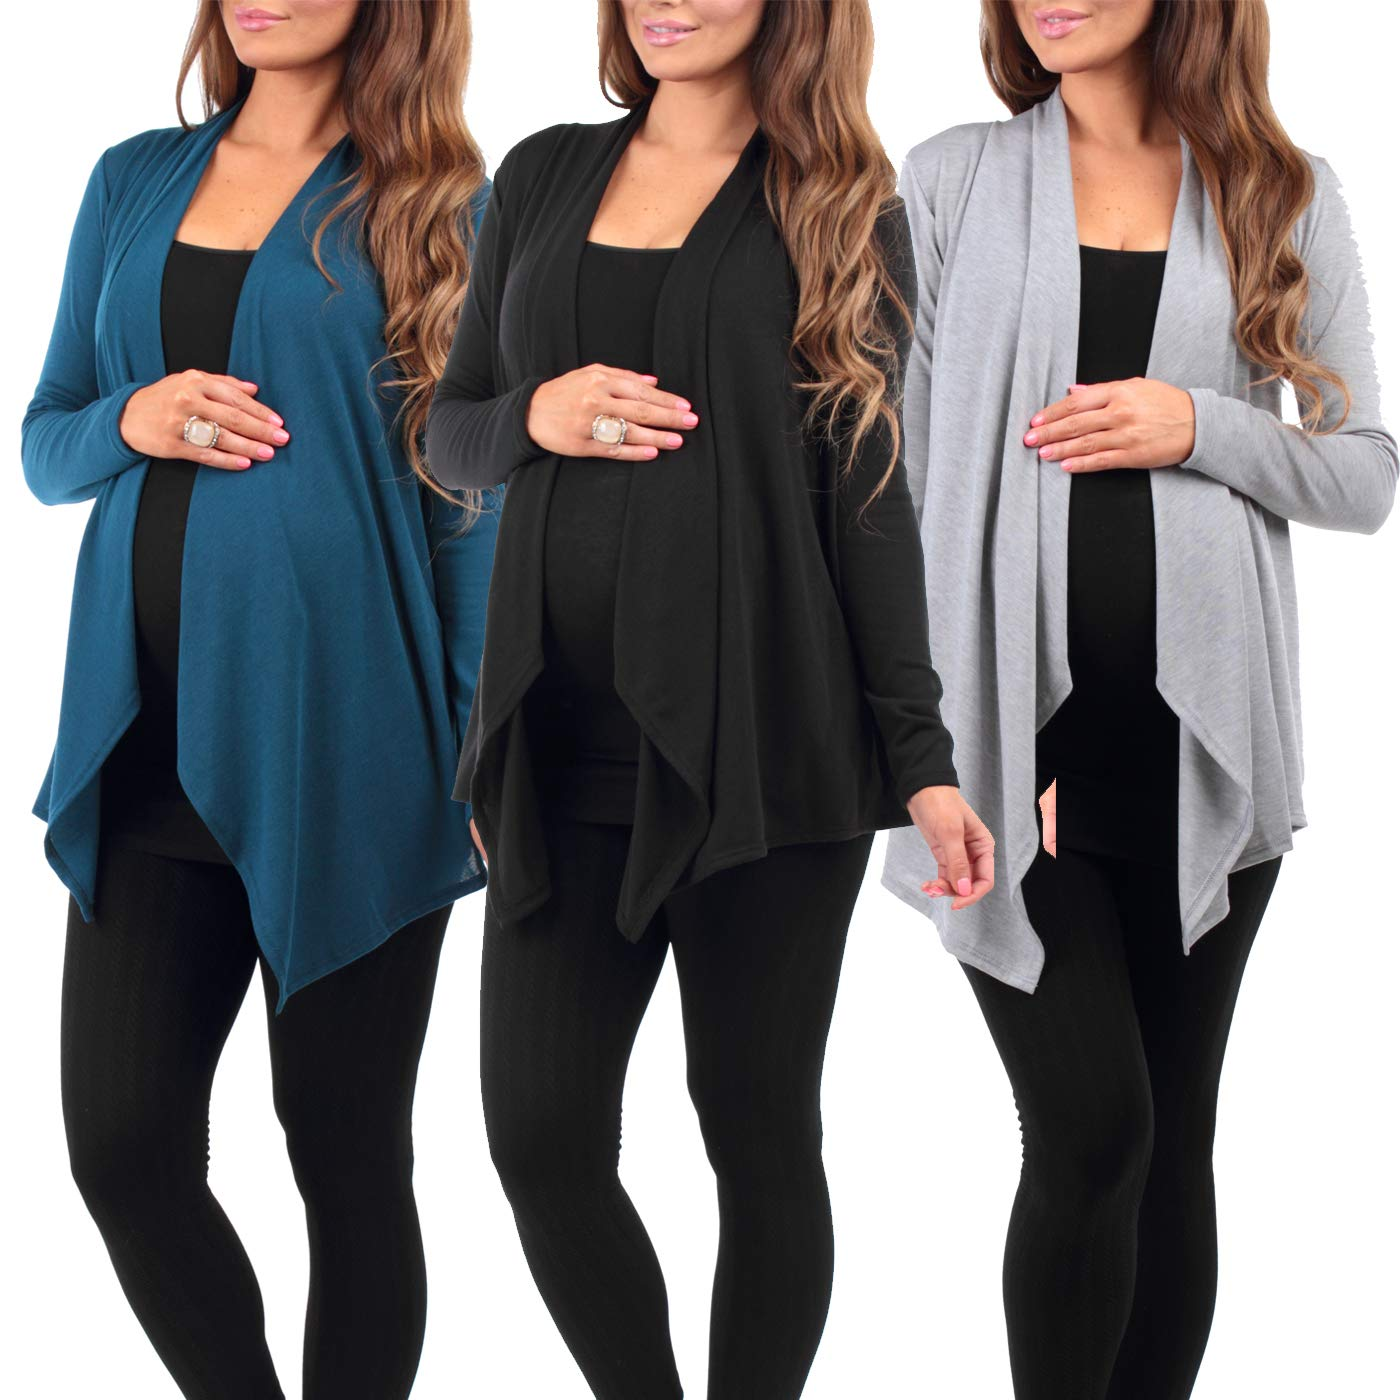 3 Pack Women's Hacci Maternity and Nursing Cardigan by Rags and Couture - Made in USA ,Xlarge,Black/Teal/Heather Grey